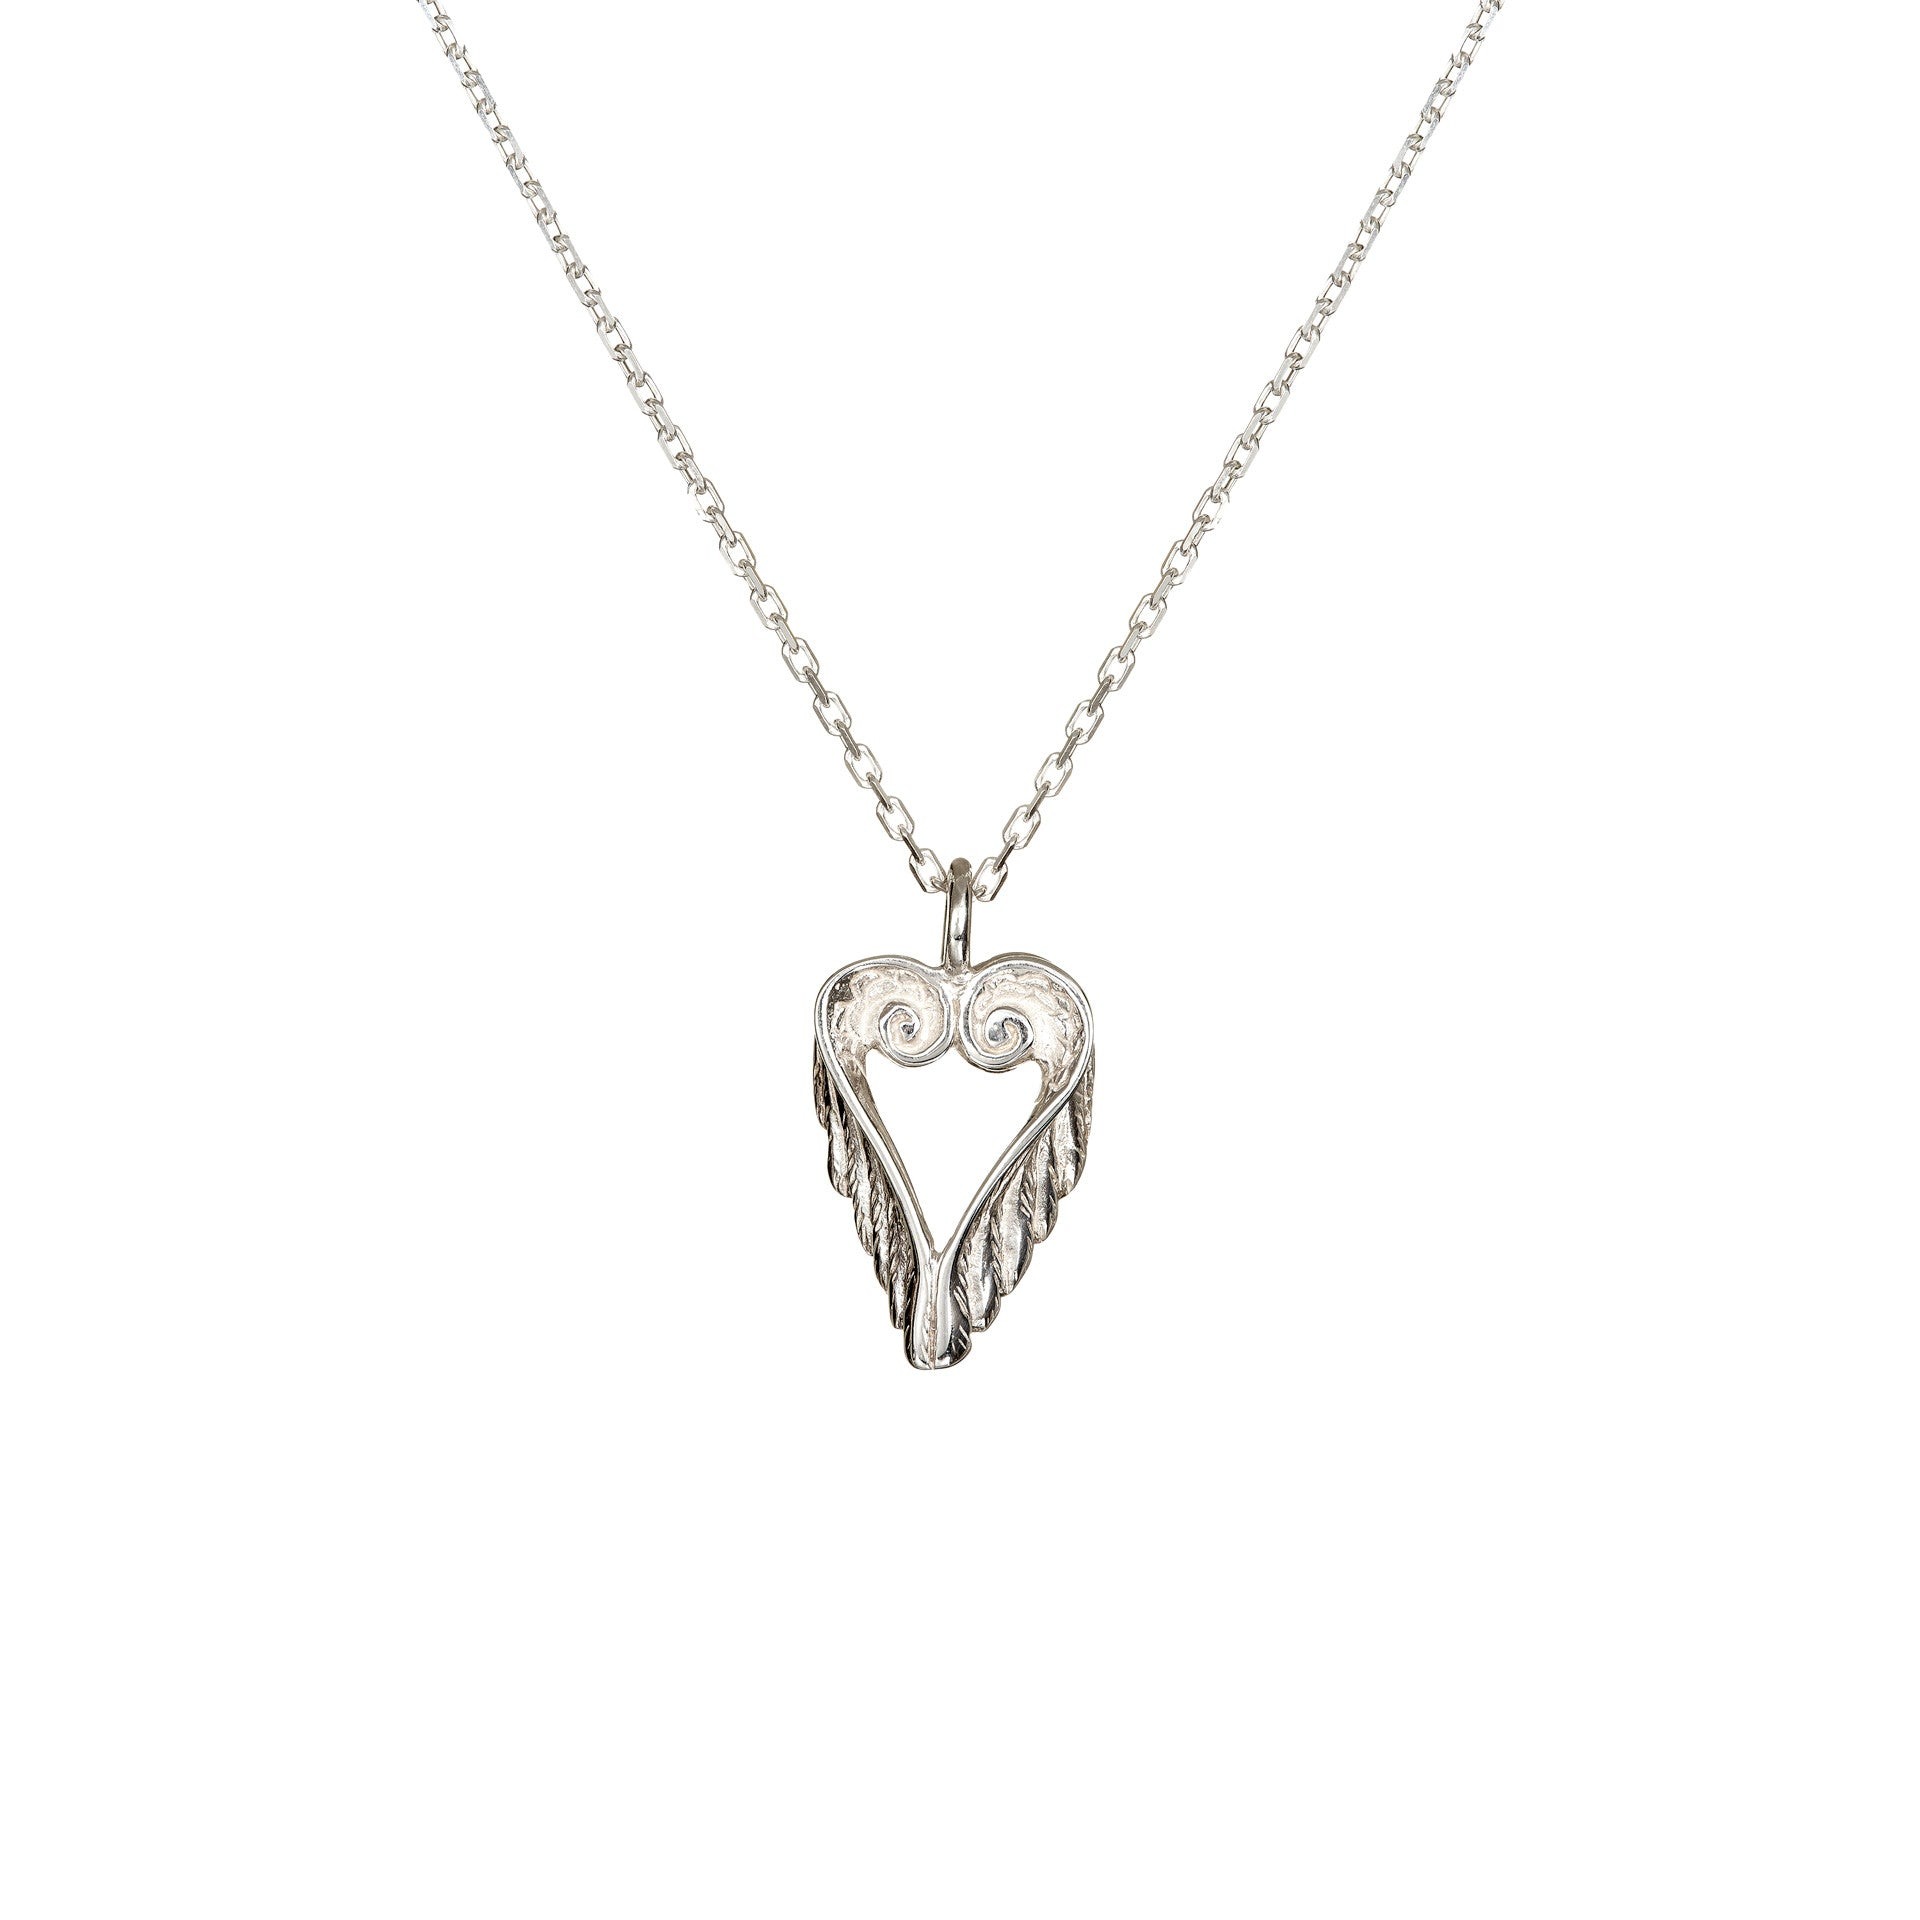 Celtic Heart Angel Wings Pendant with a sterling silver chain, beautiful jewelry perfect as a gift for a loved one.